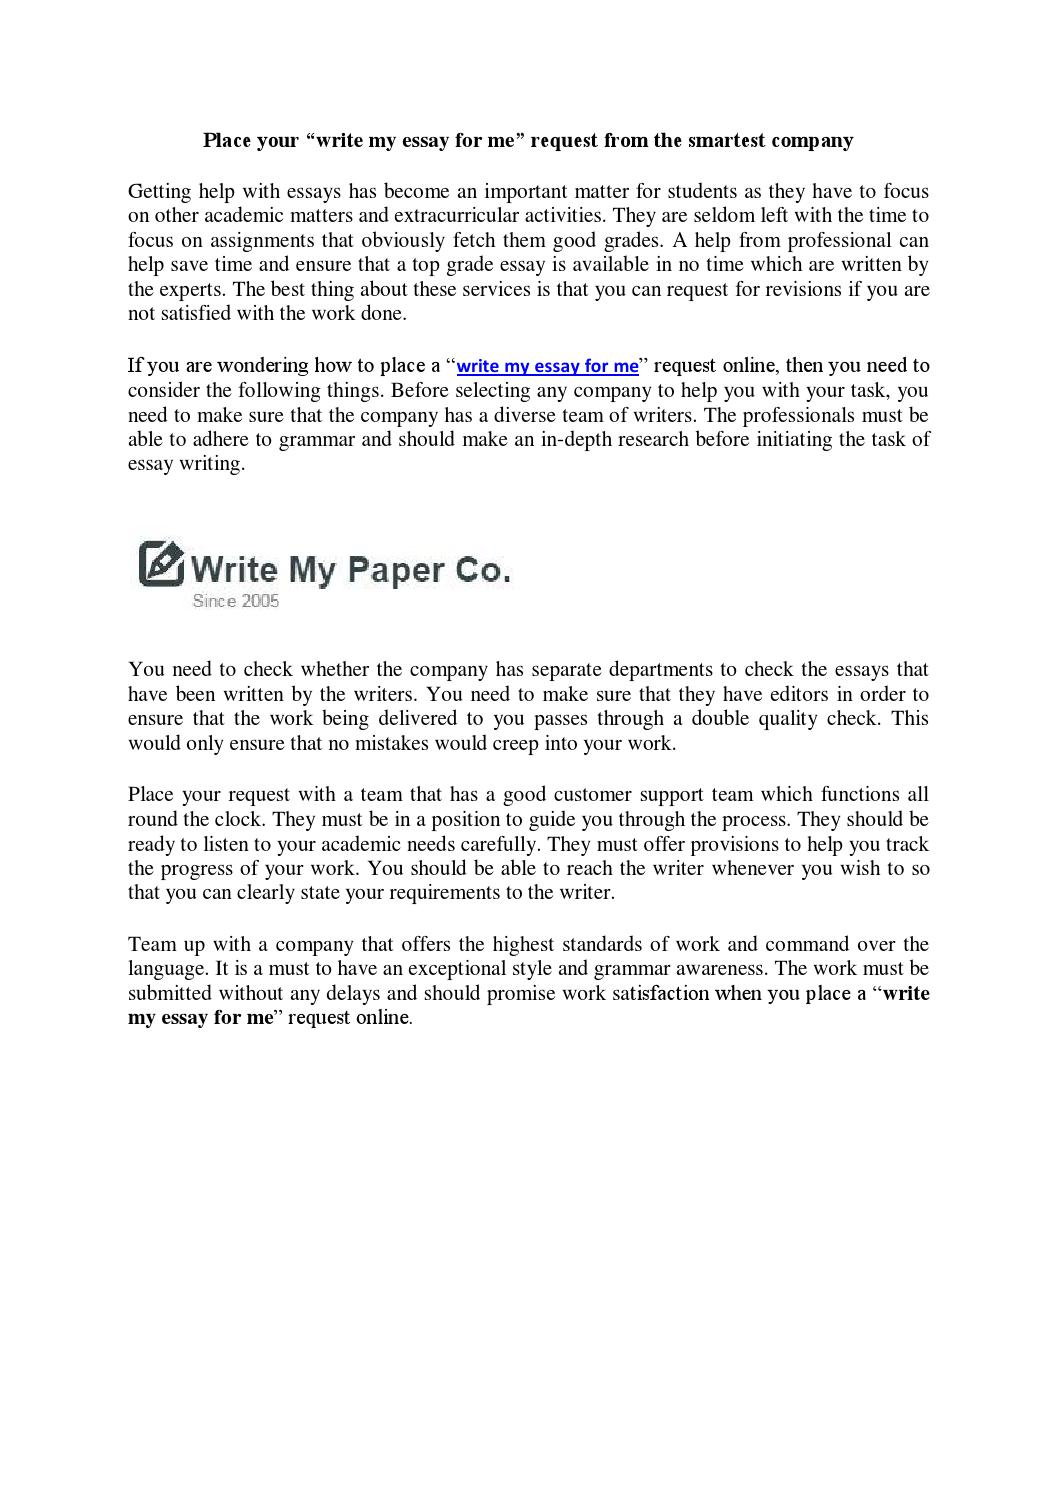 027 Do My Essay For Me Example Page 1 Impressive Write Please Free Online Custom Cheap Full